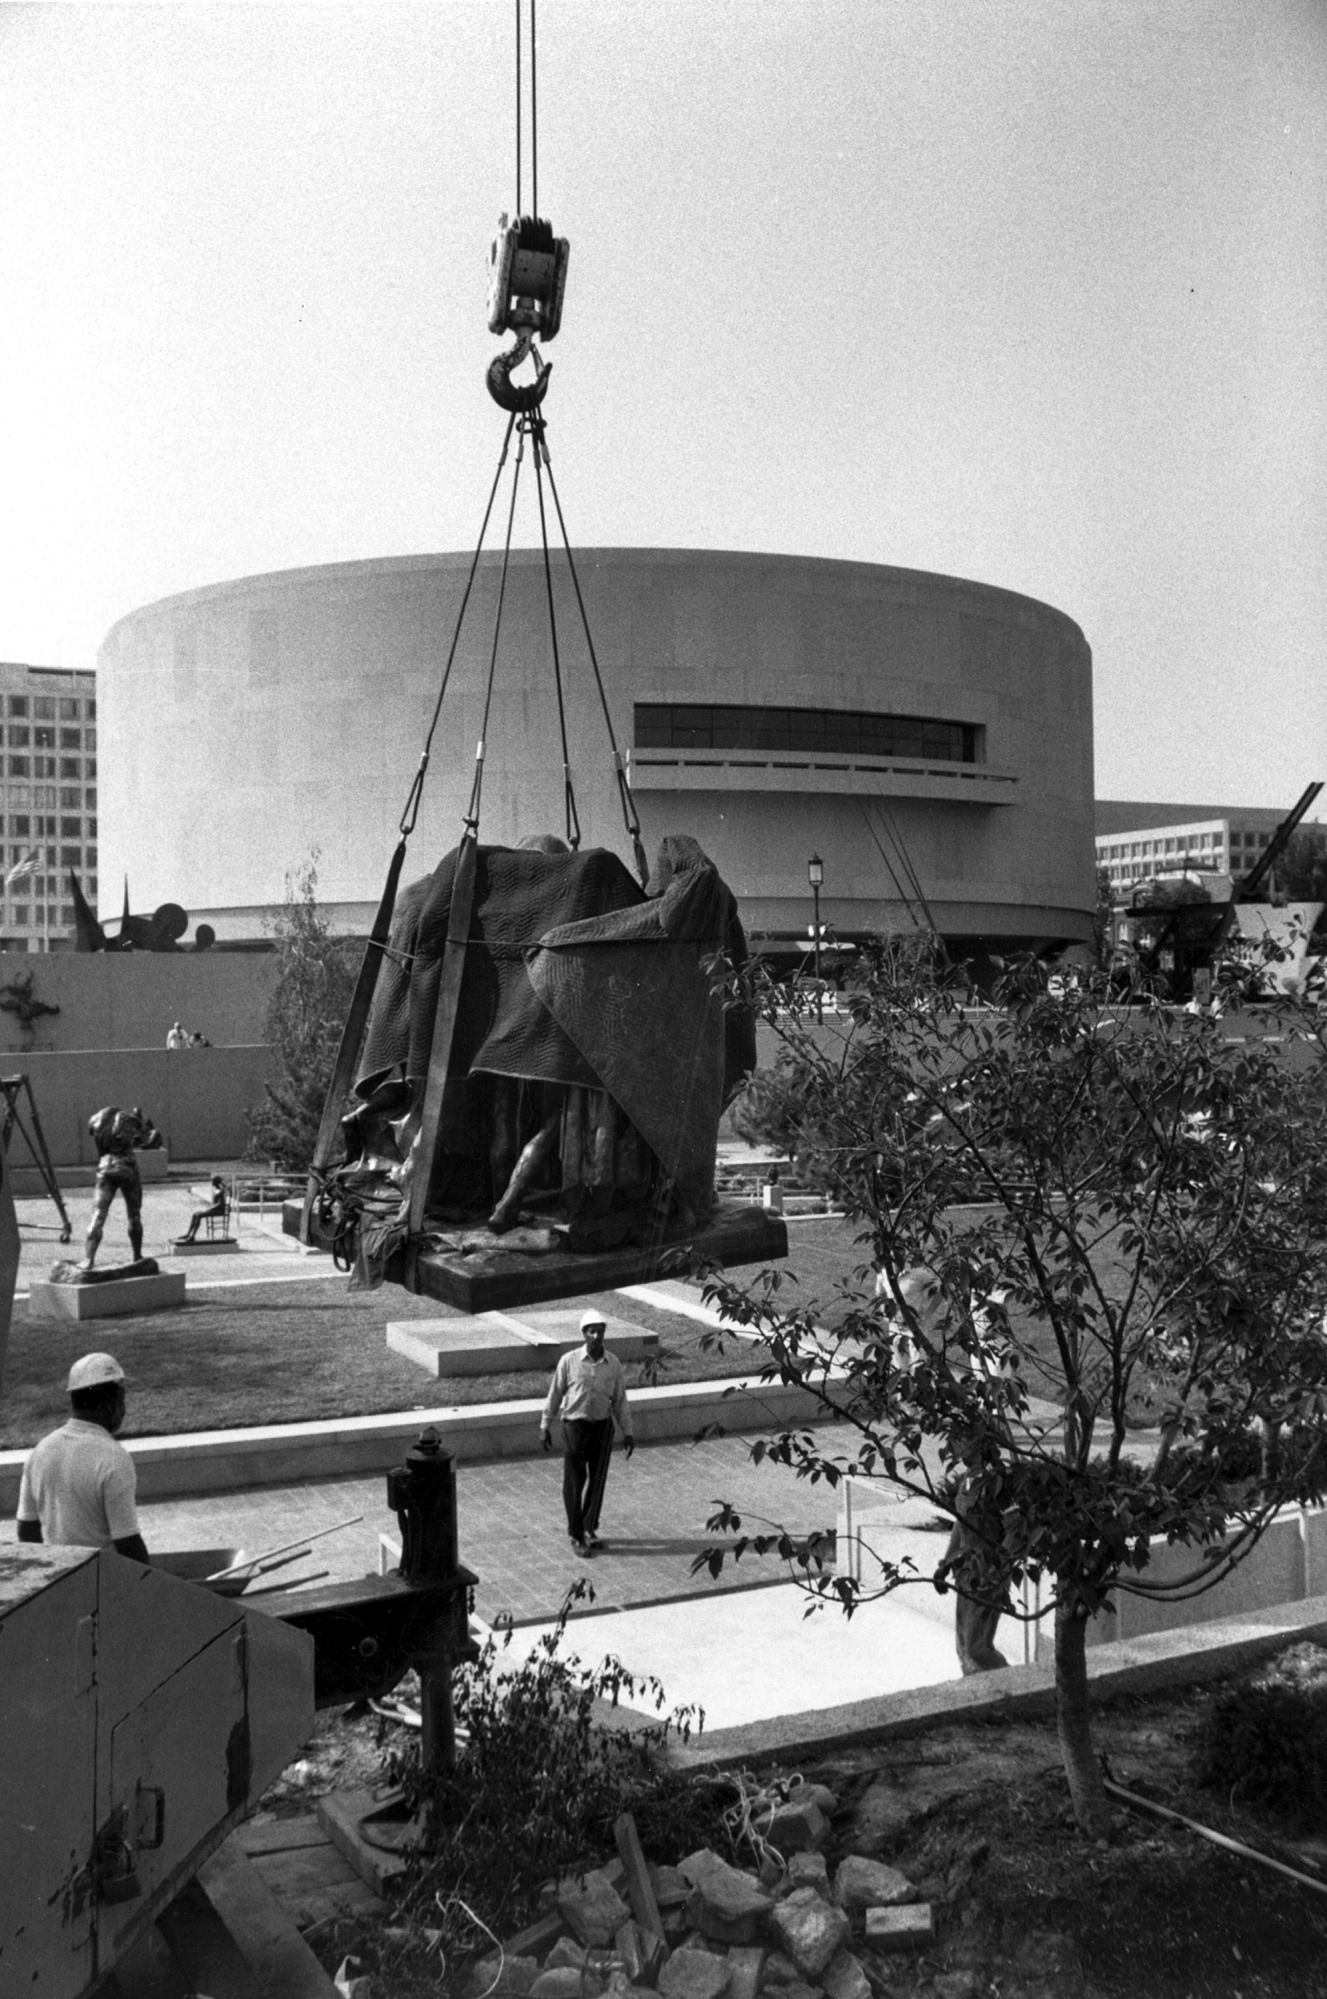 HMSG sculpture airlifted back to garden